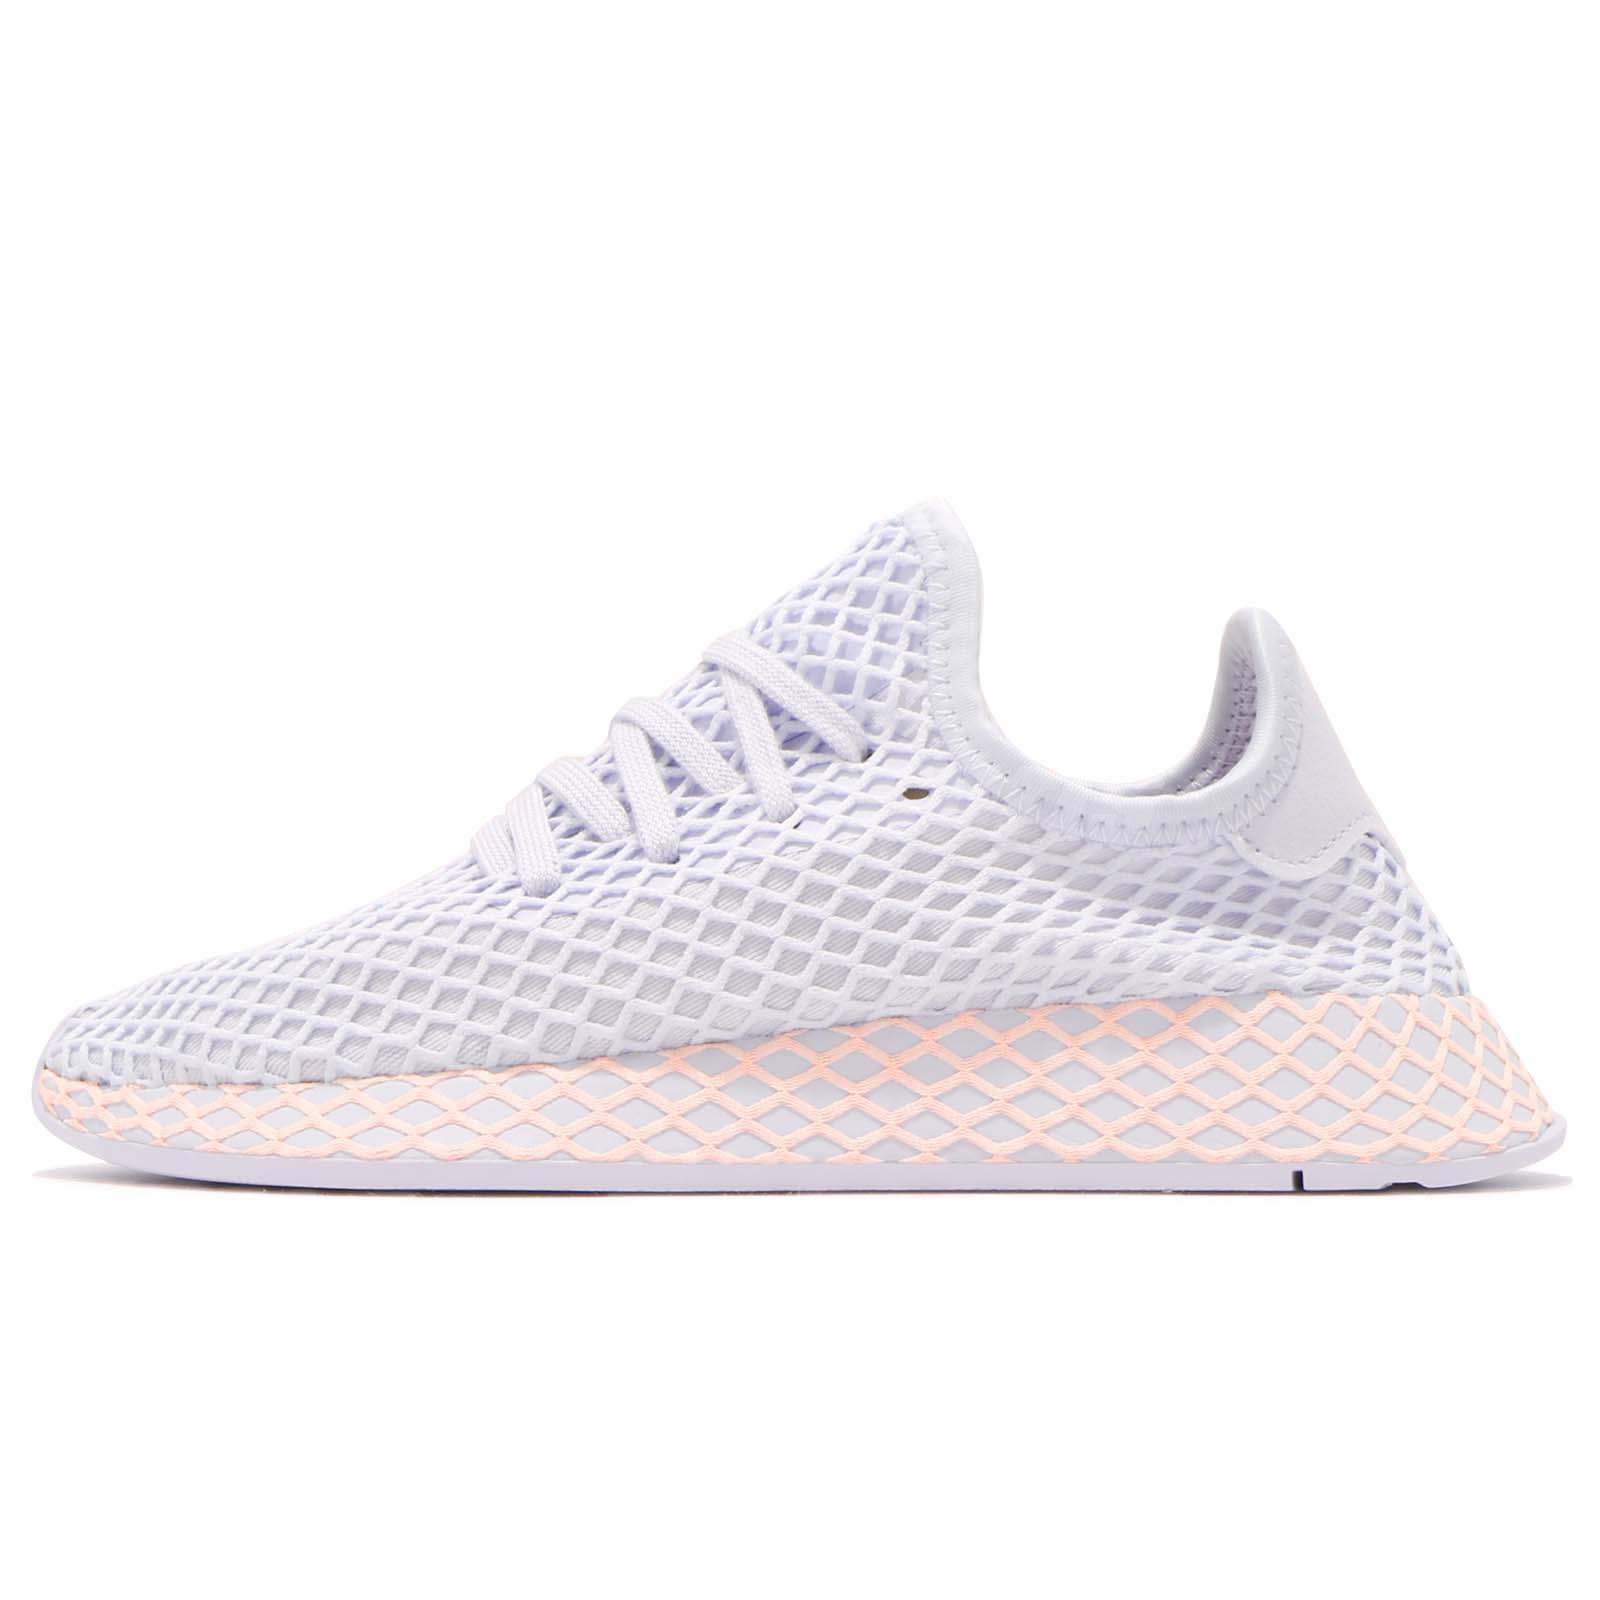 add7abba9 adidas Originals Deerupt W Runner Aero Blue Clear Orange Running Shoes  B37878